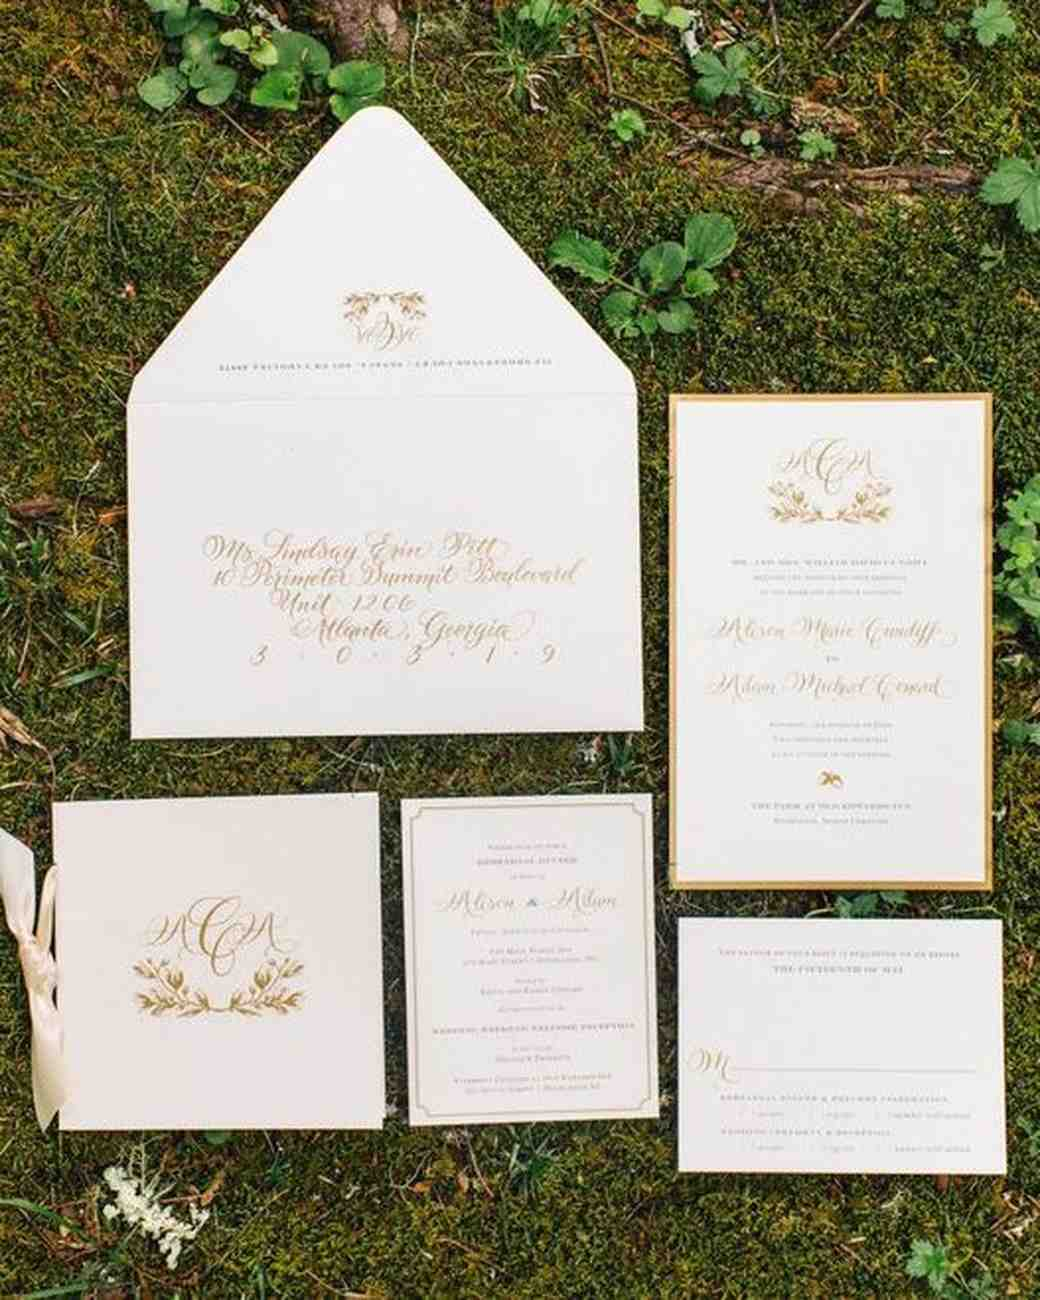 white and gold wedding invitation - 57 Unique Wedding Vows Examples Impression